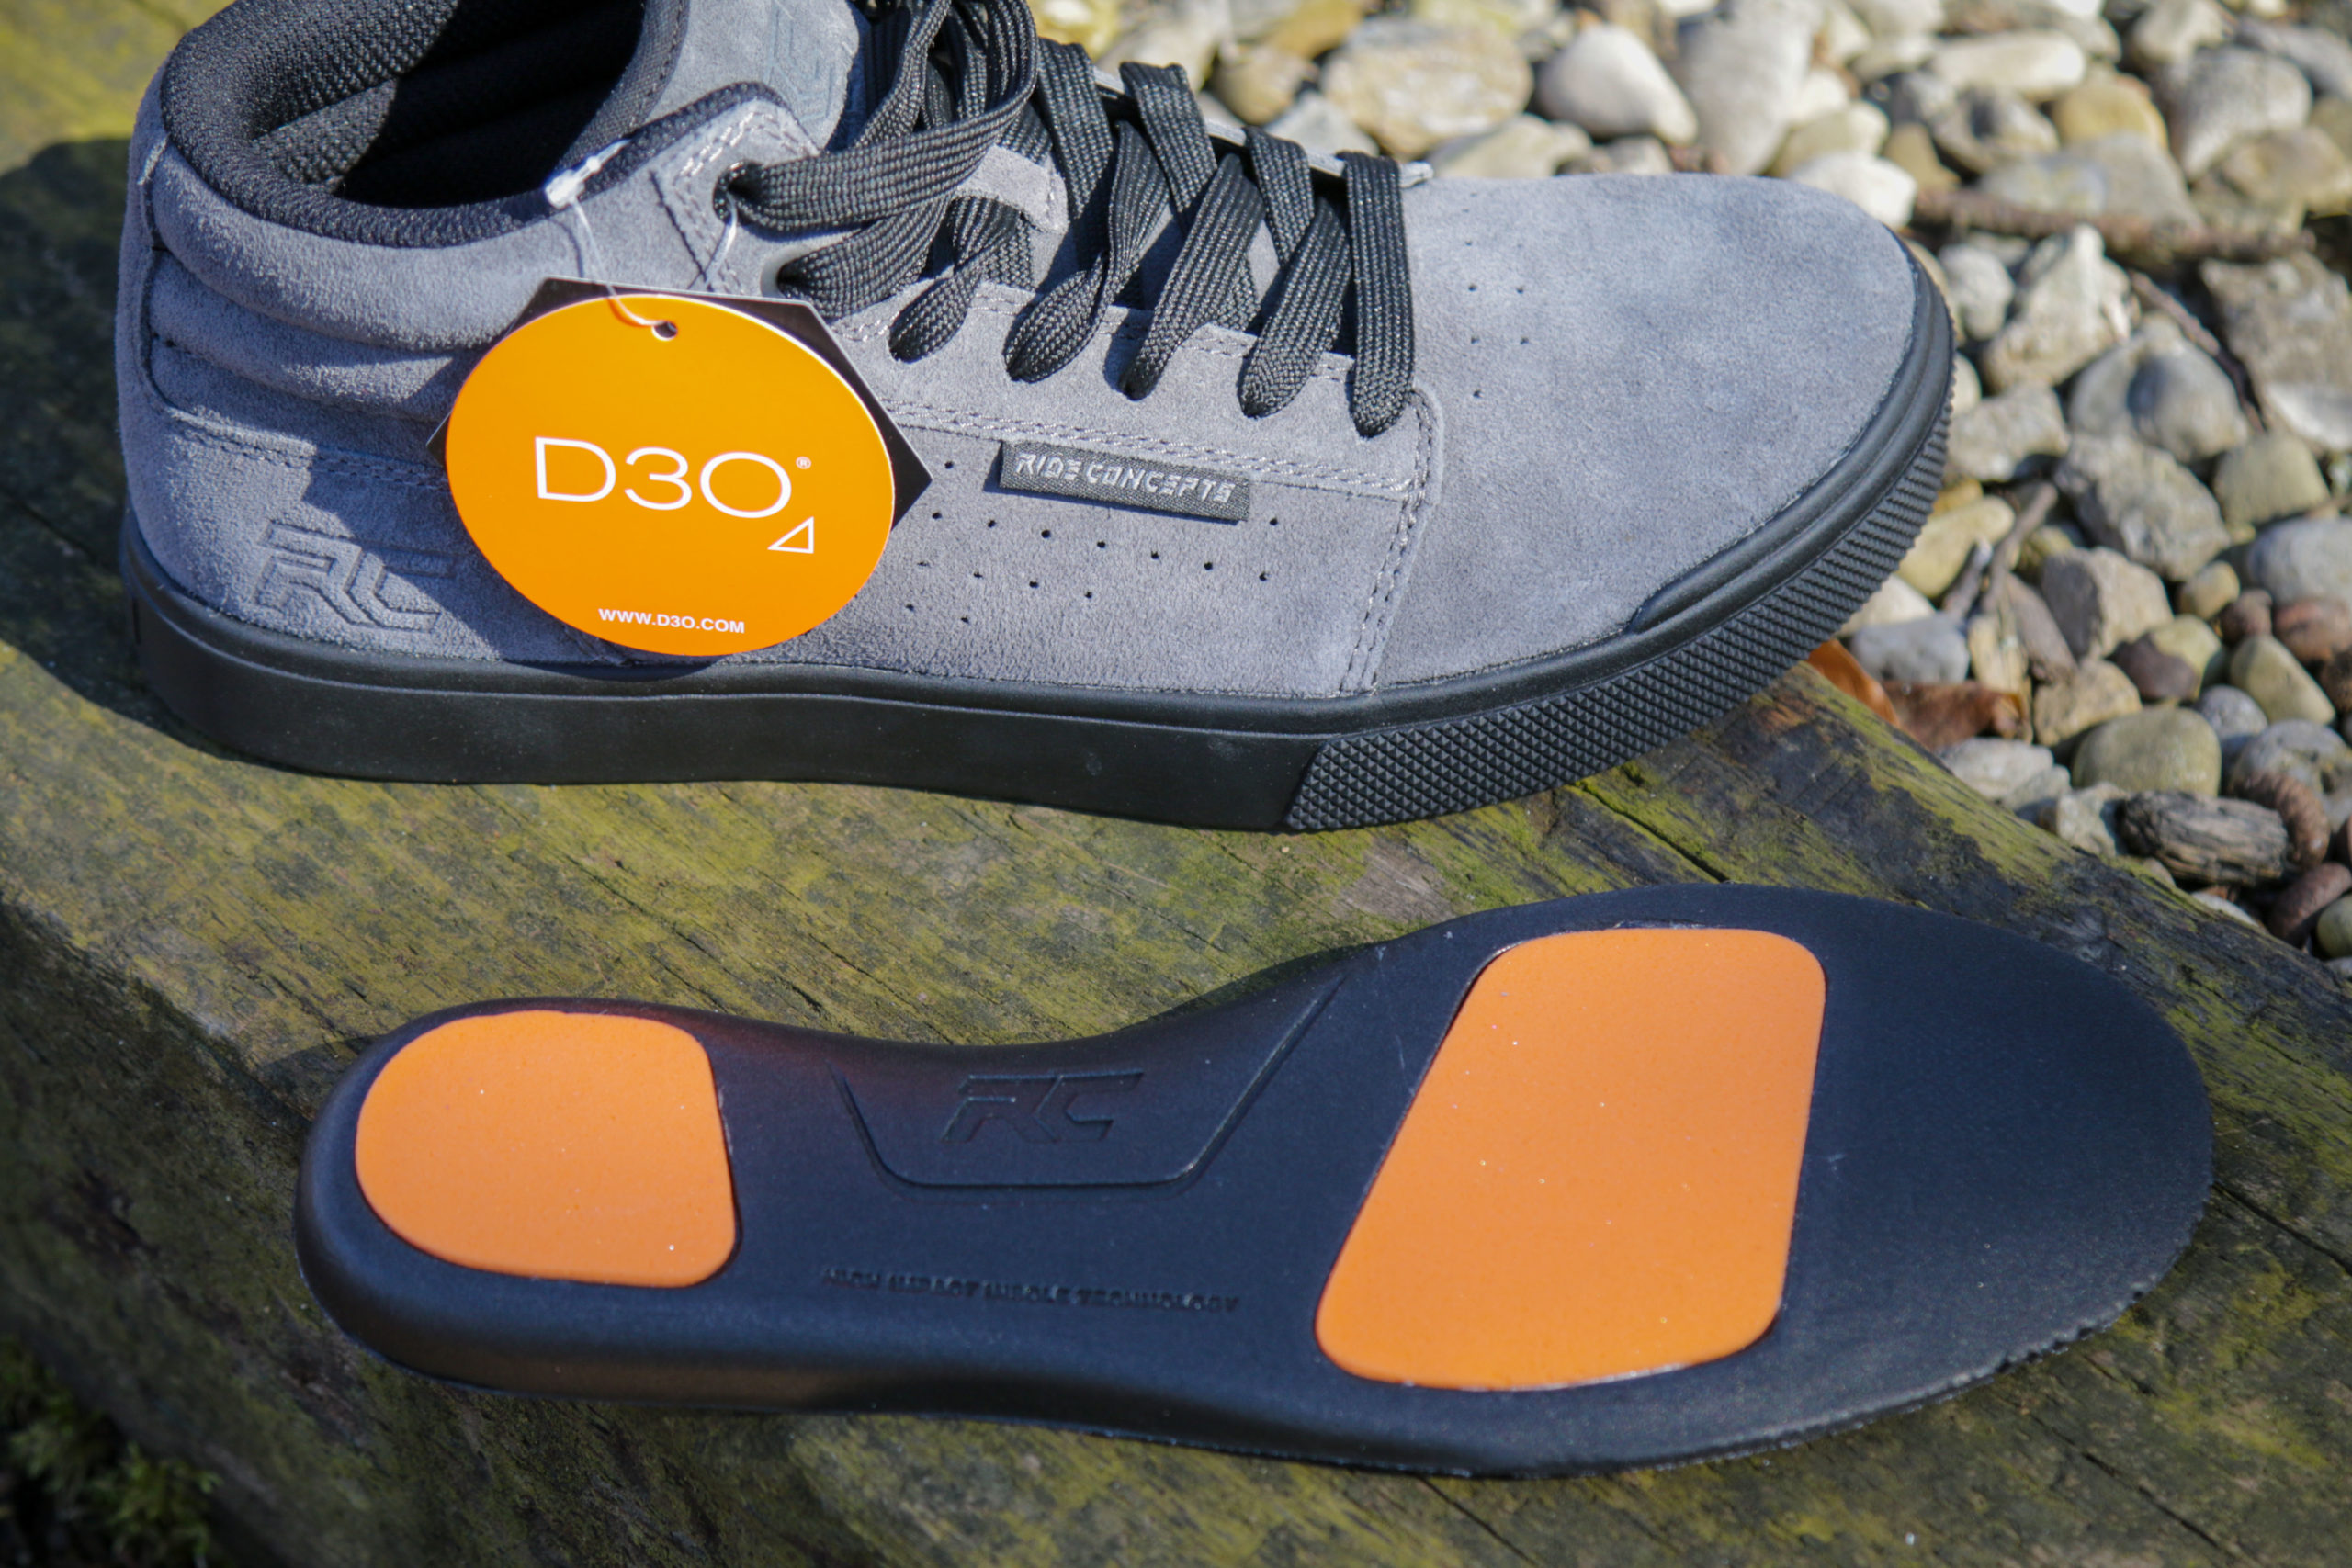 Ride Concepts Vice Mid shoe with d30 insoles